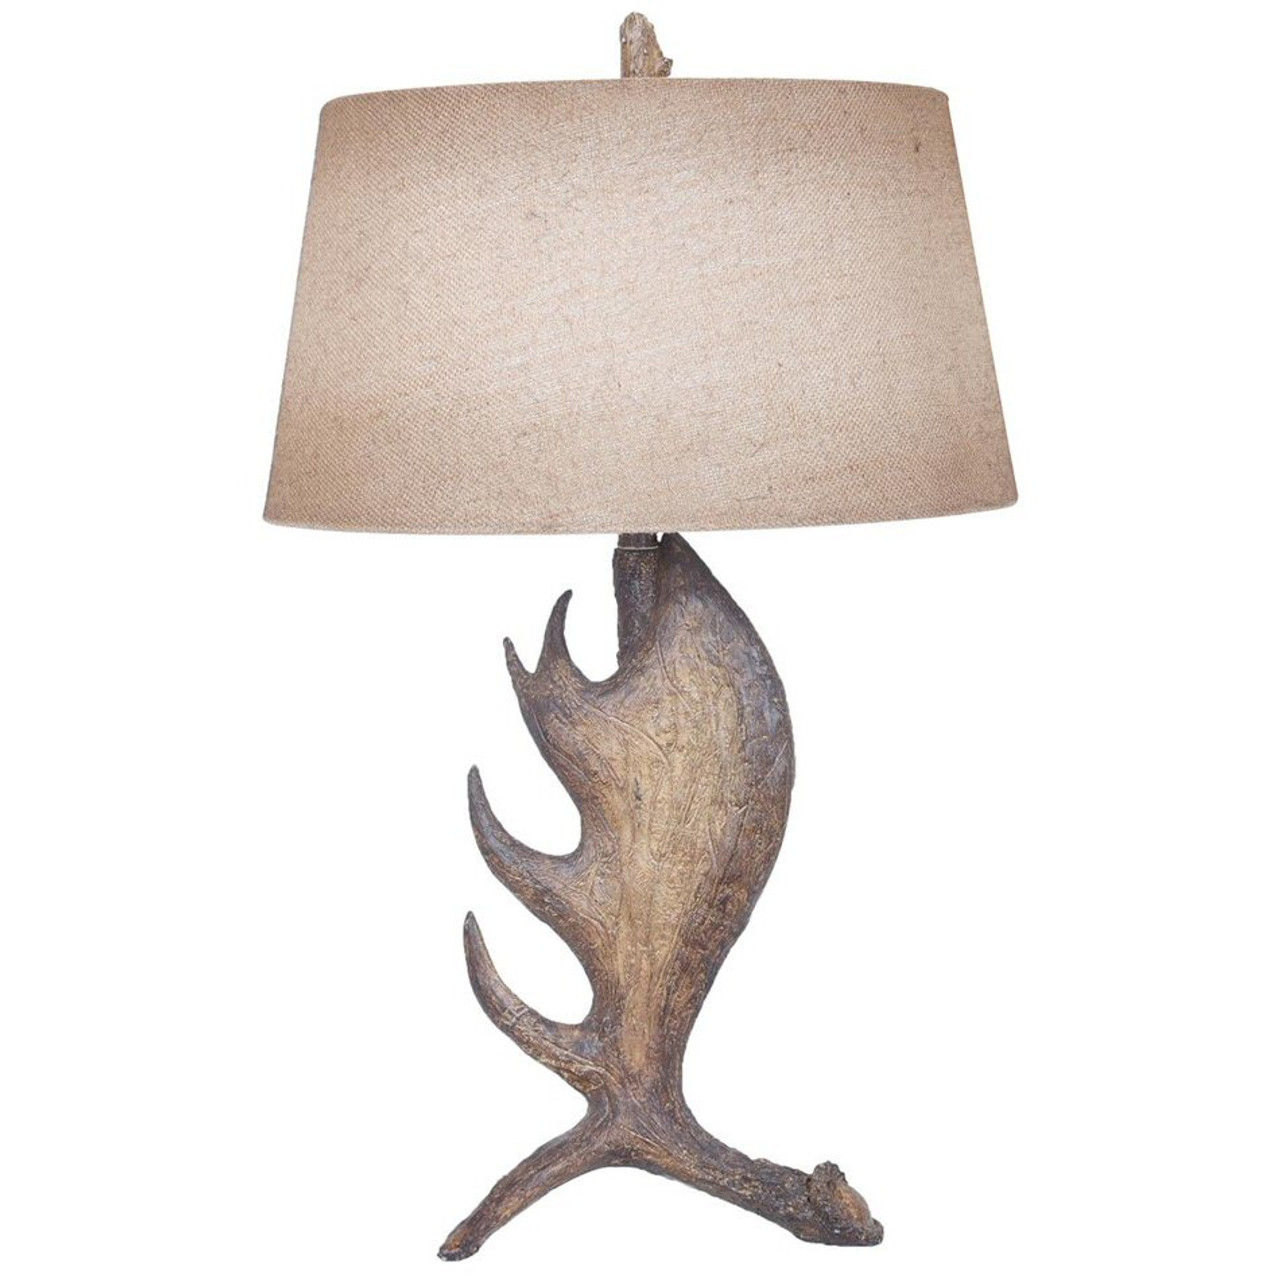 Moose Shed Antler Resin Table Lamp With Antique Burlap Shade   Wildlife  Style Lighting